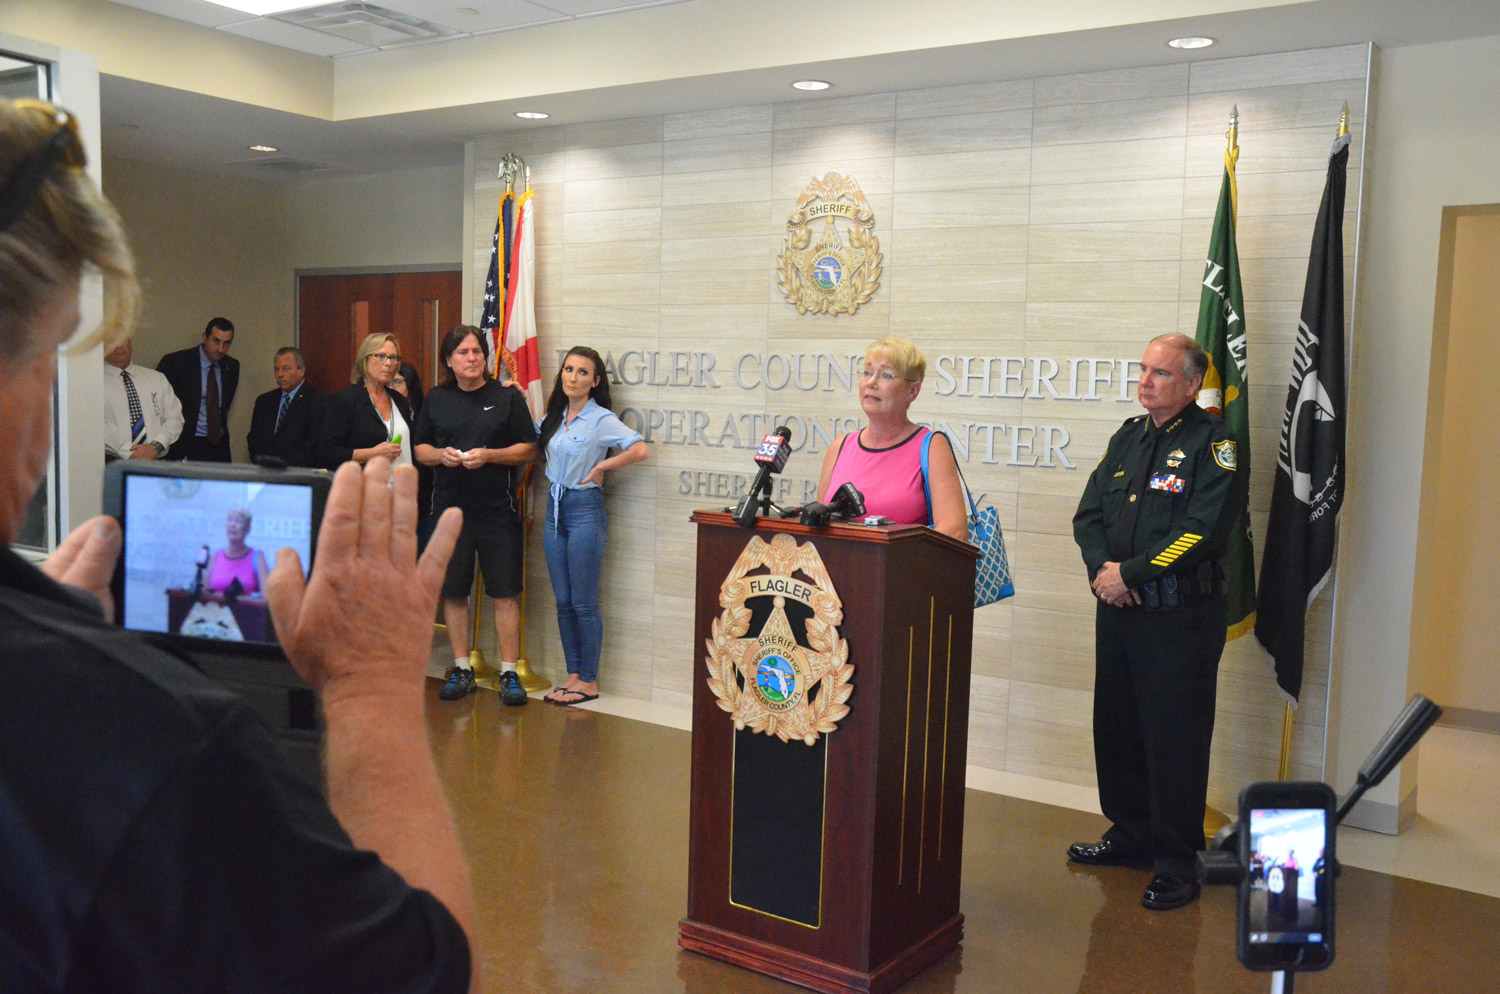 Renée Deangelis, mother of Savannah, 23, who died of an overdose last fall, speaks to the press this afternoon, with her husband, Charles, and her daughter Christina, to the left of the image, and Sheriff Rick Staly to the right. Assistant State Prosecutor Jason Lewis and State Attorney R.J. Larizza are toward the left corner. Click on the image for larger view. (© FlaglerLive)